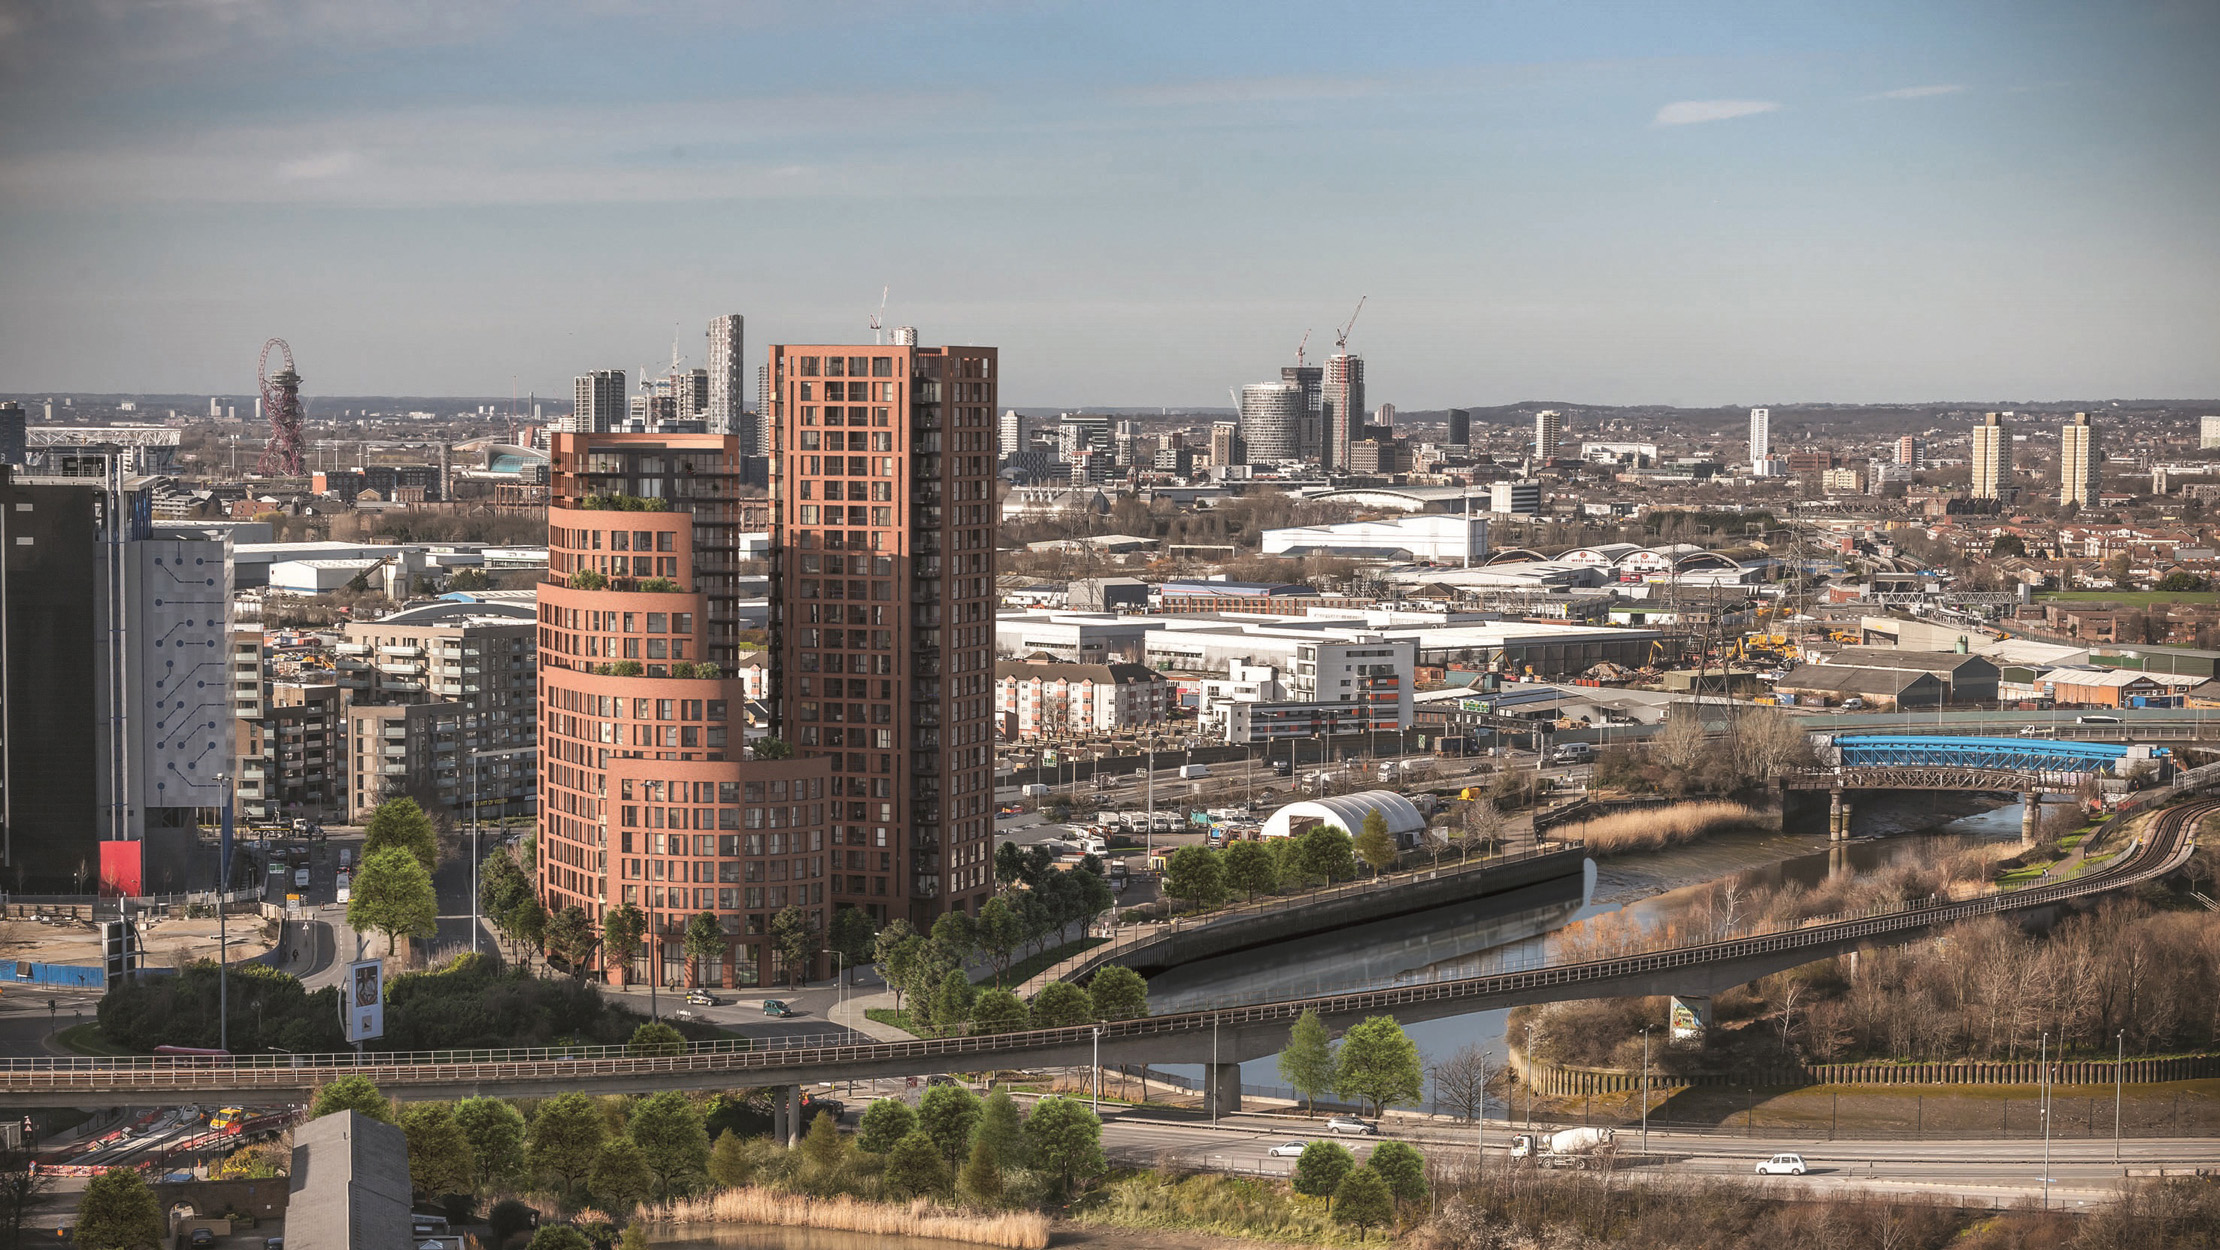 introducing orchard wharf to the london docklands